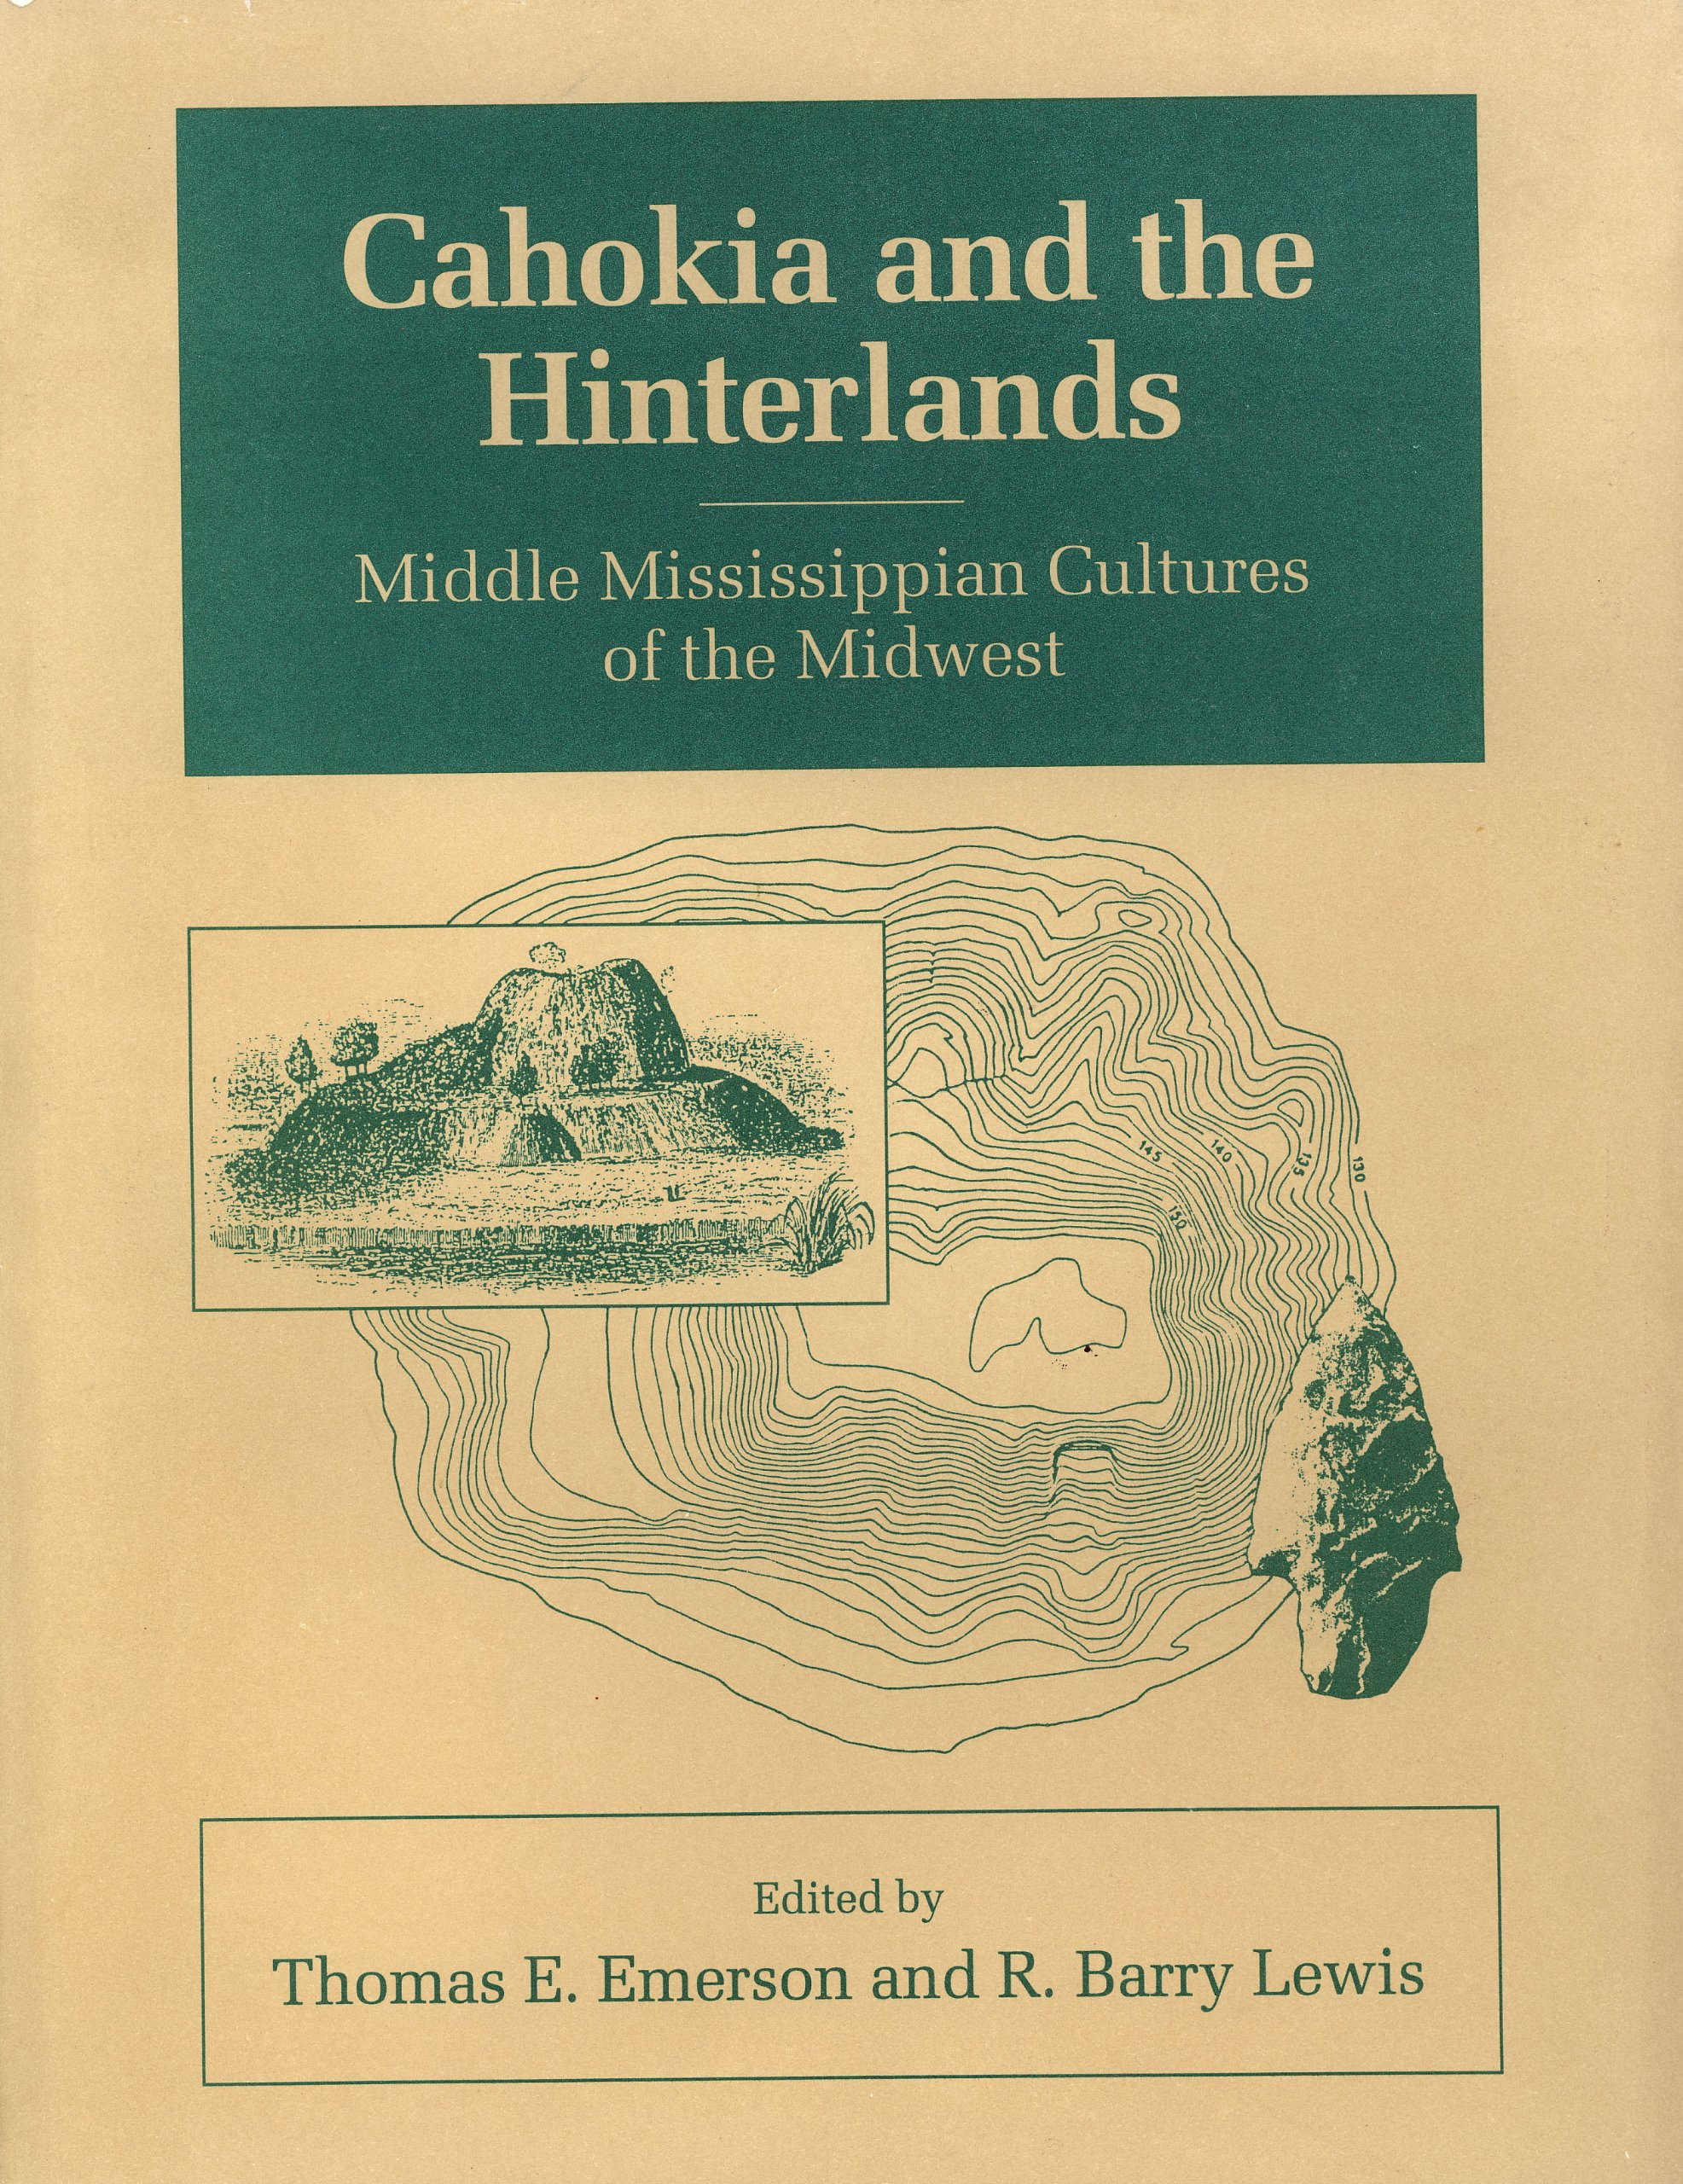 Cahokia and the Hinterlands: Middle Mississippian Cultures of the Midwest